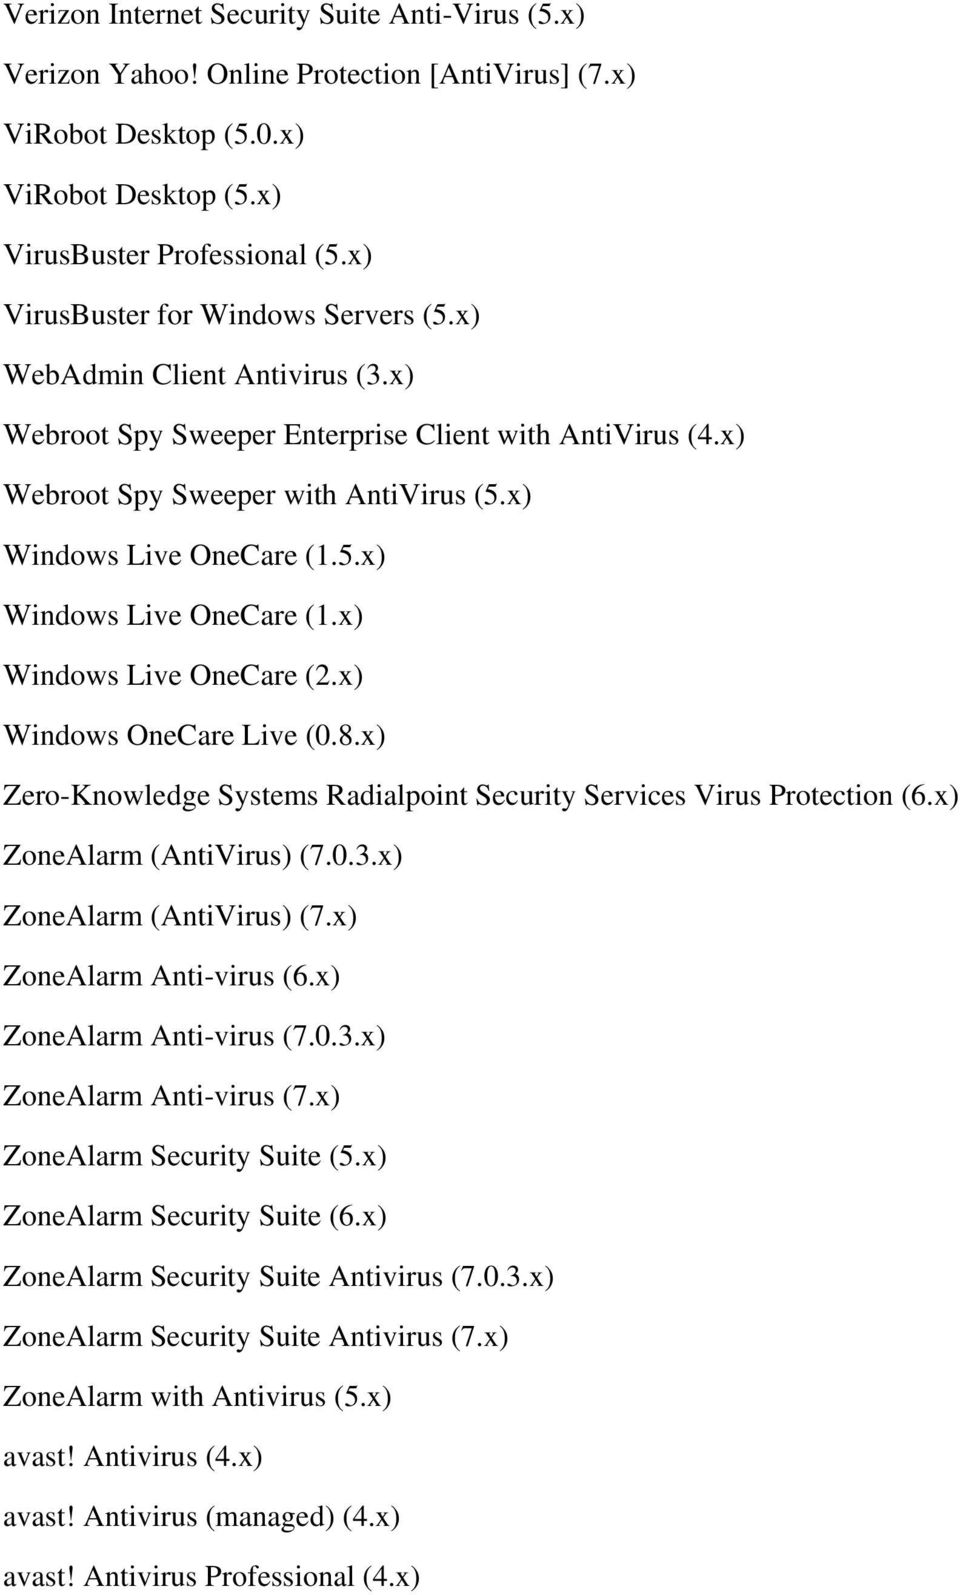 5.x) Windows Live OneCare (1.x) Windows Live OneCare (2.x) Windows OneCare Live (0.8.x) Zero-Knowledge Systems Radialpoint Security Services Virus Protection (6.x) ZoneAlarm (AntiVirus) (7.0.3.